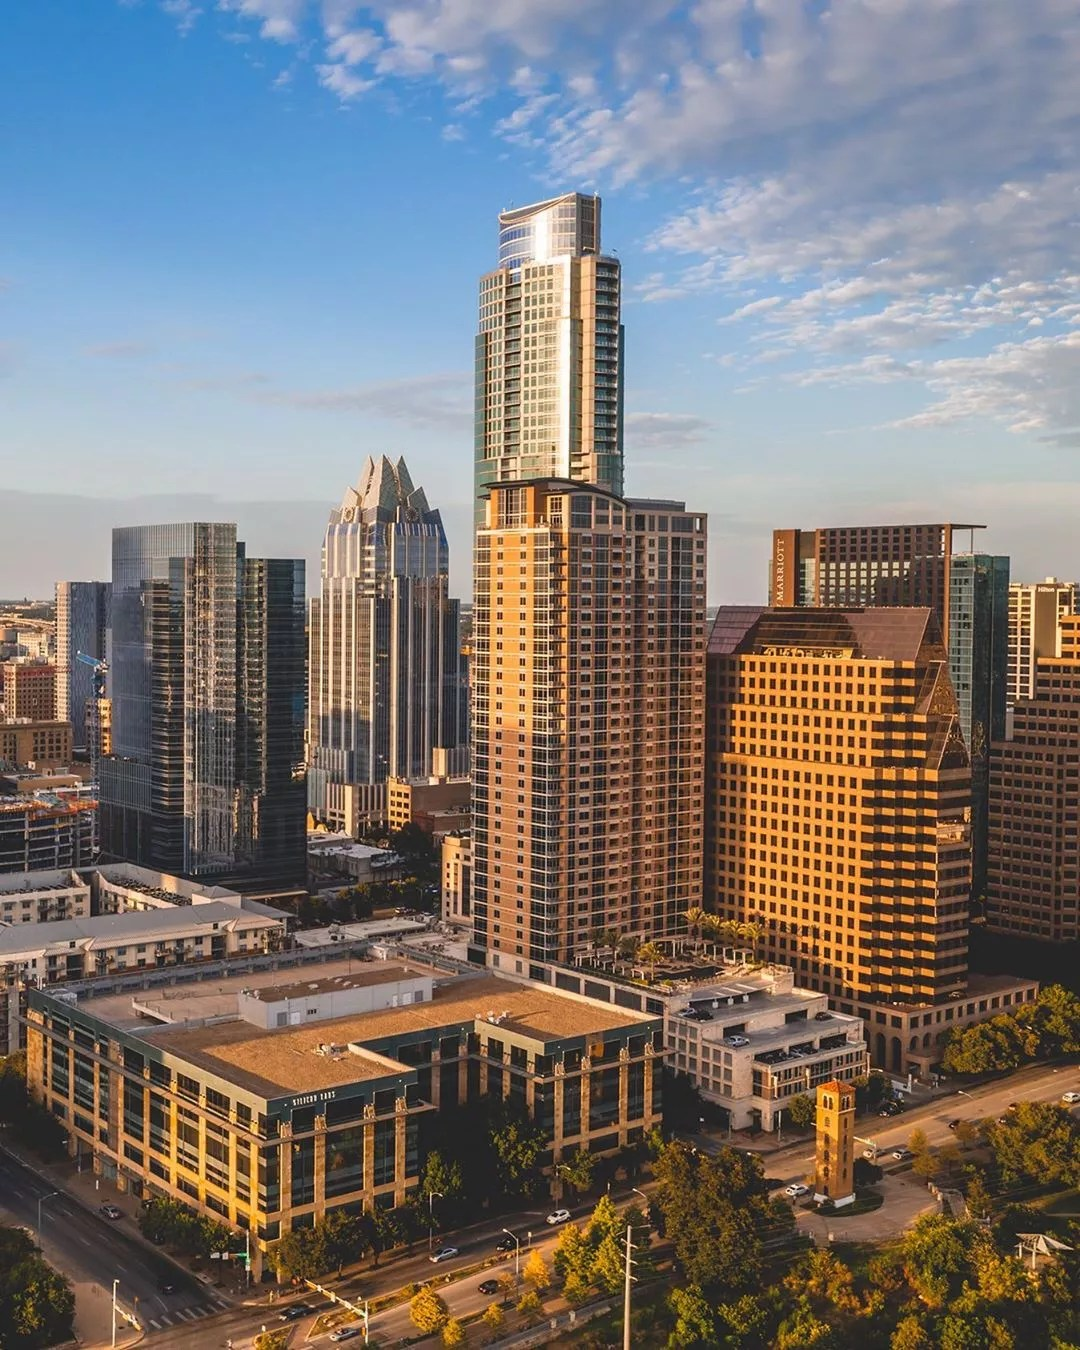 Sun shining on tall buildings in Downtown Austin, TX. Photo by Instagram user @flowkyte